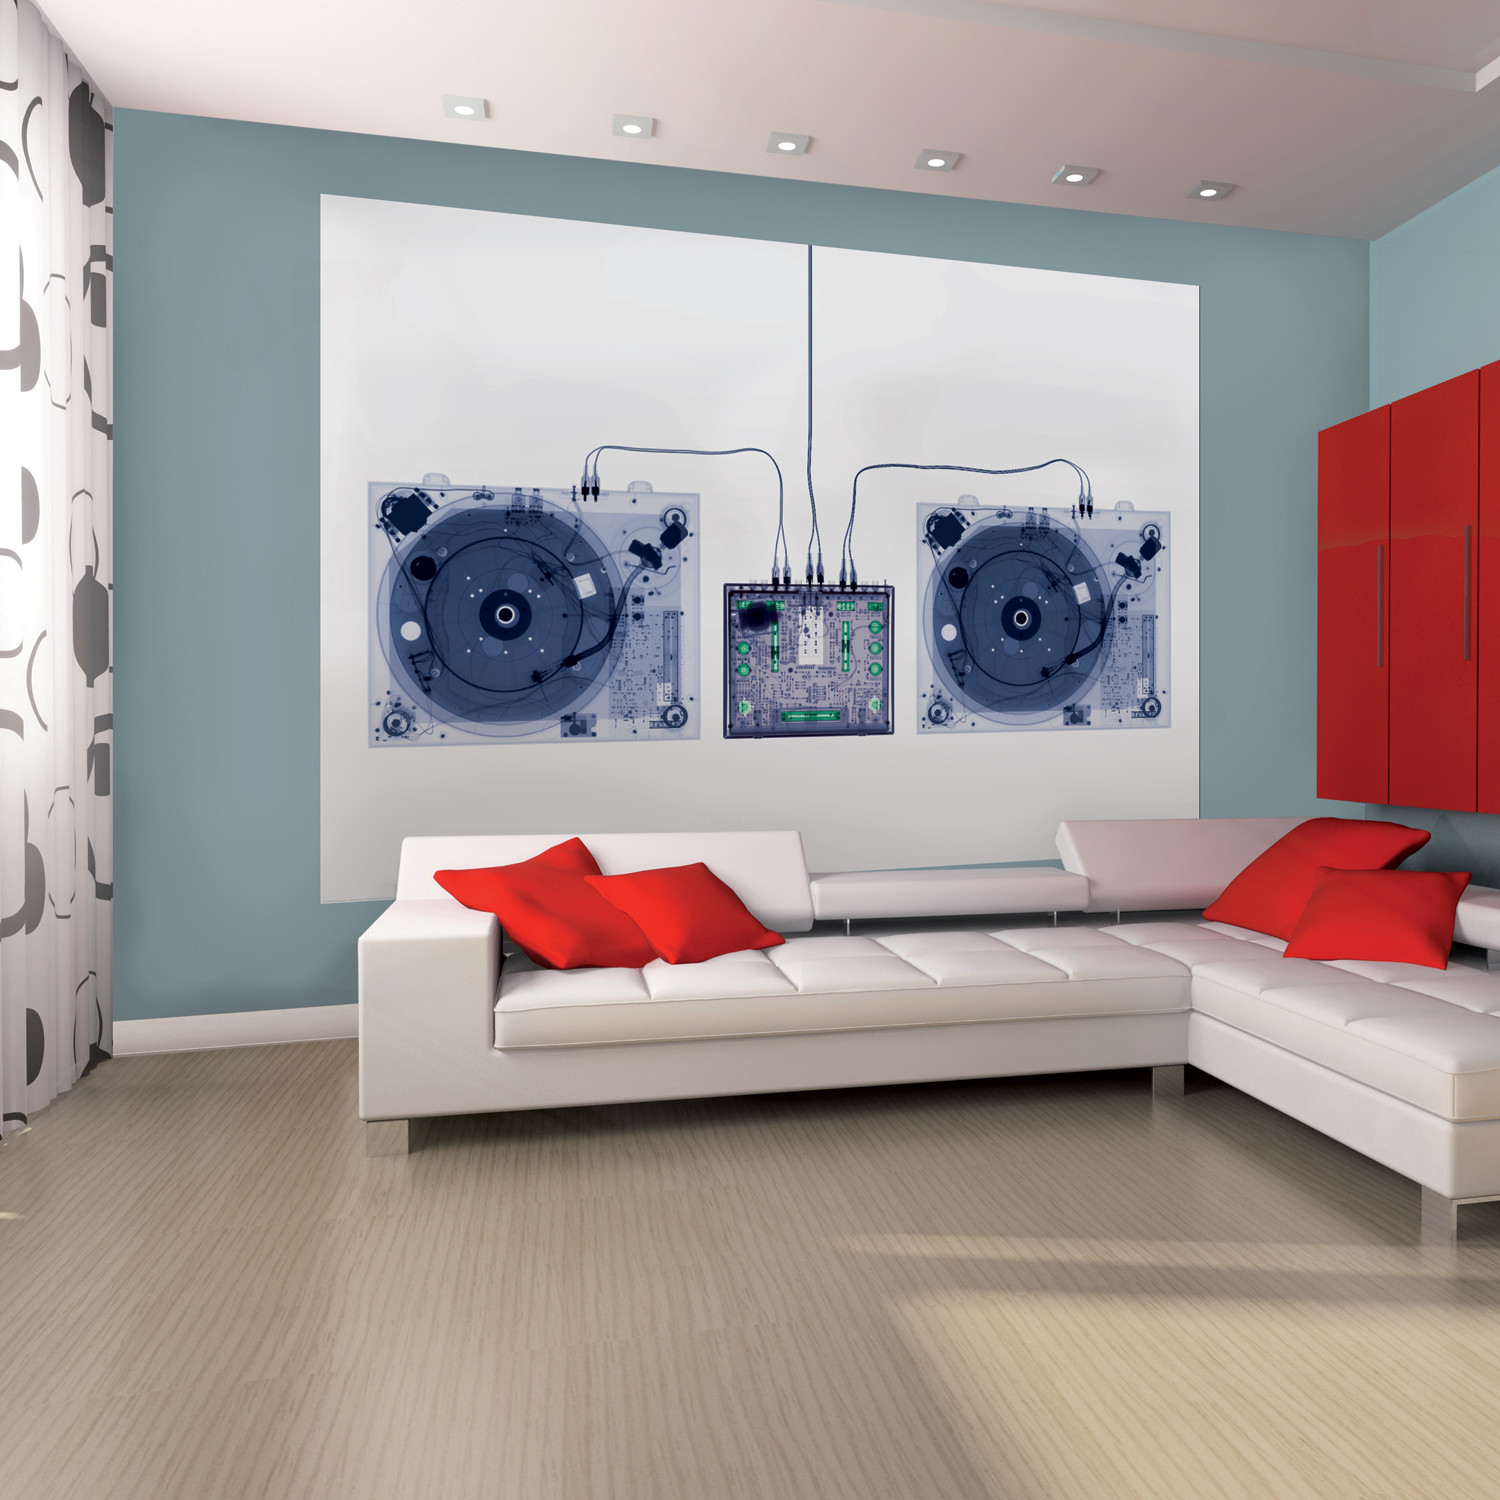 1 wall murals architectural wall decals touch of modern x ray dj decks